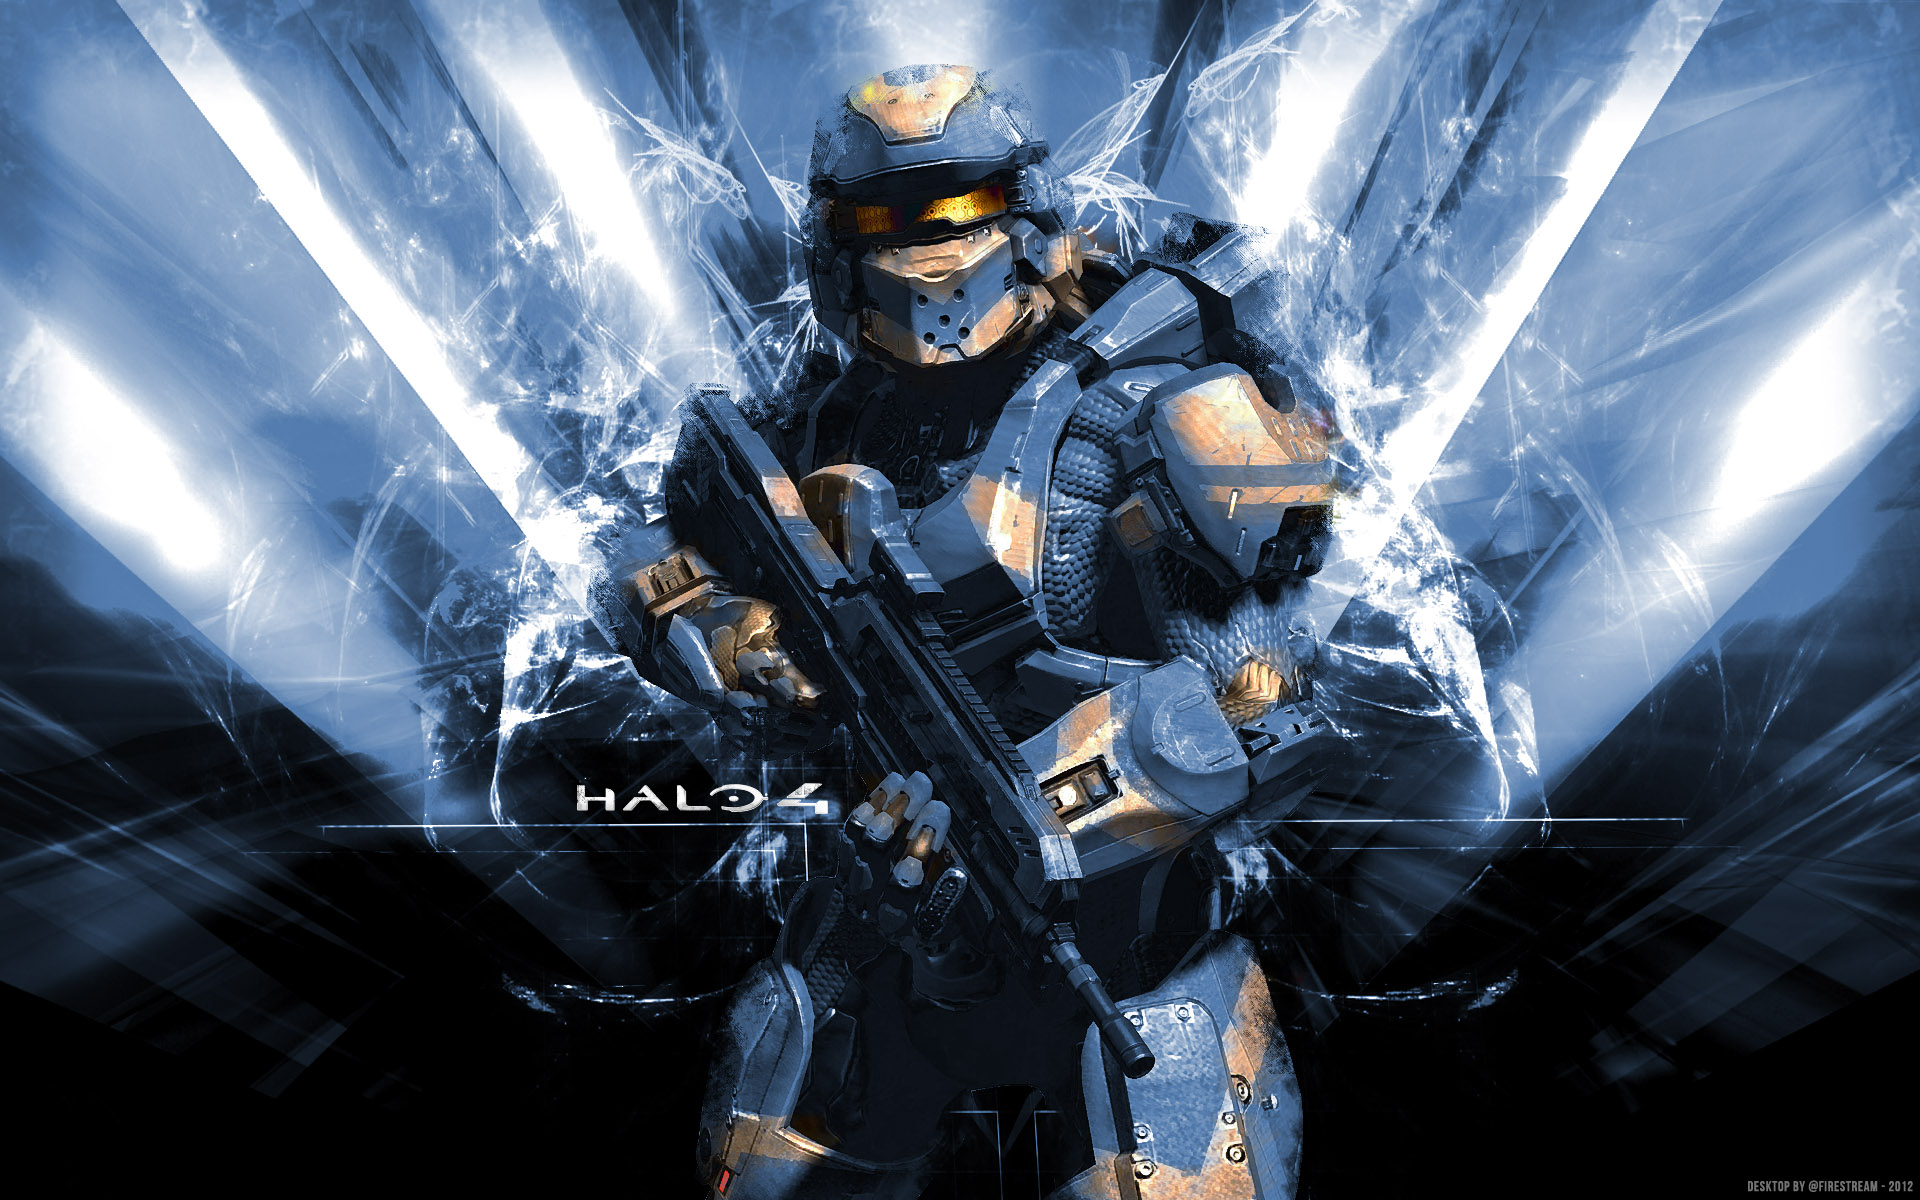 Description Halo 4 HD Wallpaper is a hi res Wallpaper for pc desktops 1920x1200